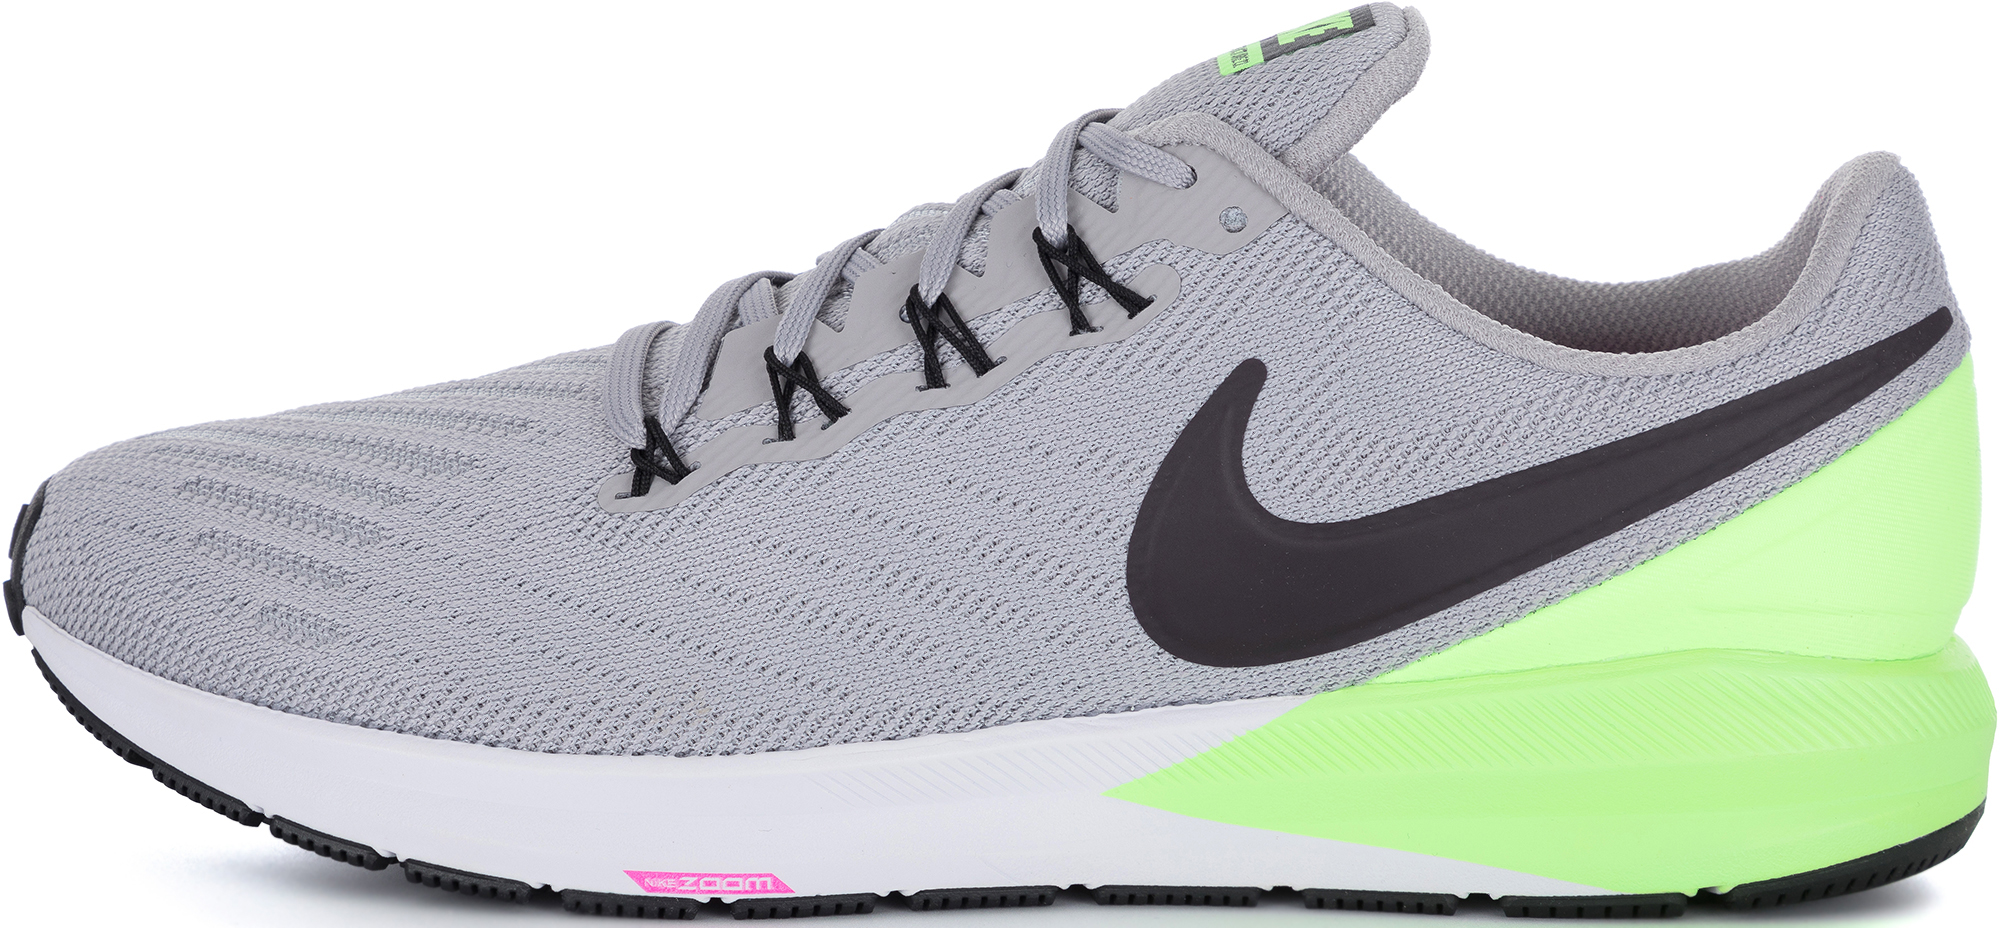 Nike Кроссовки мужские Nike Air Zoom Structure 22, размер 45